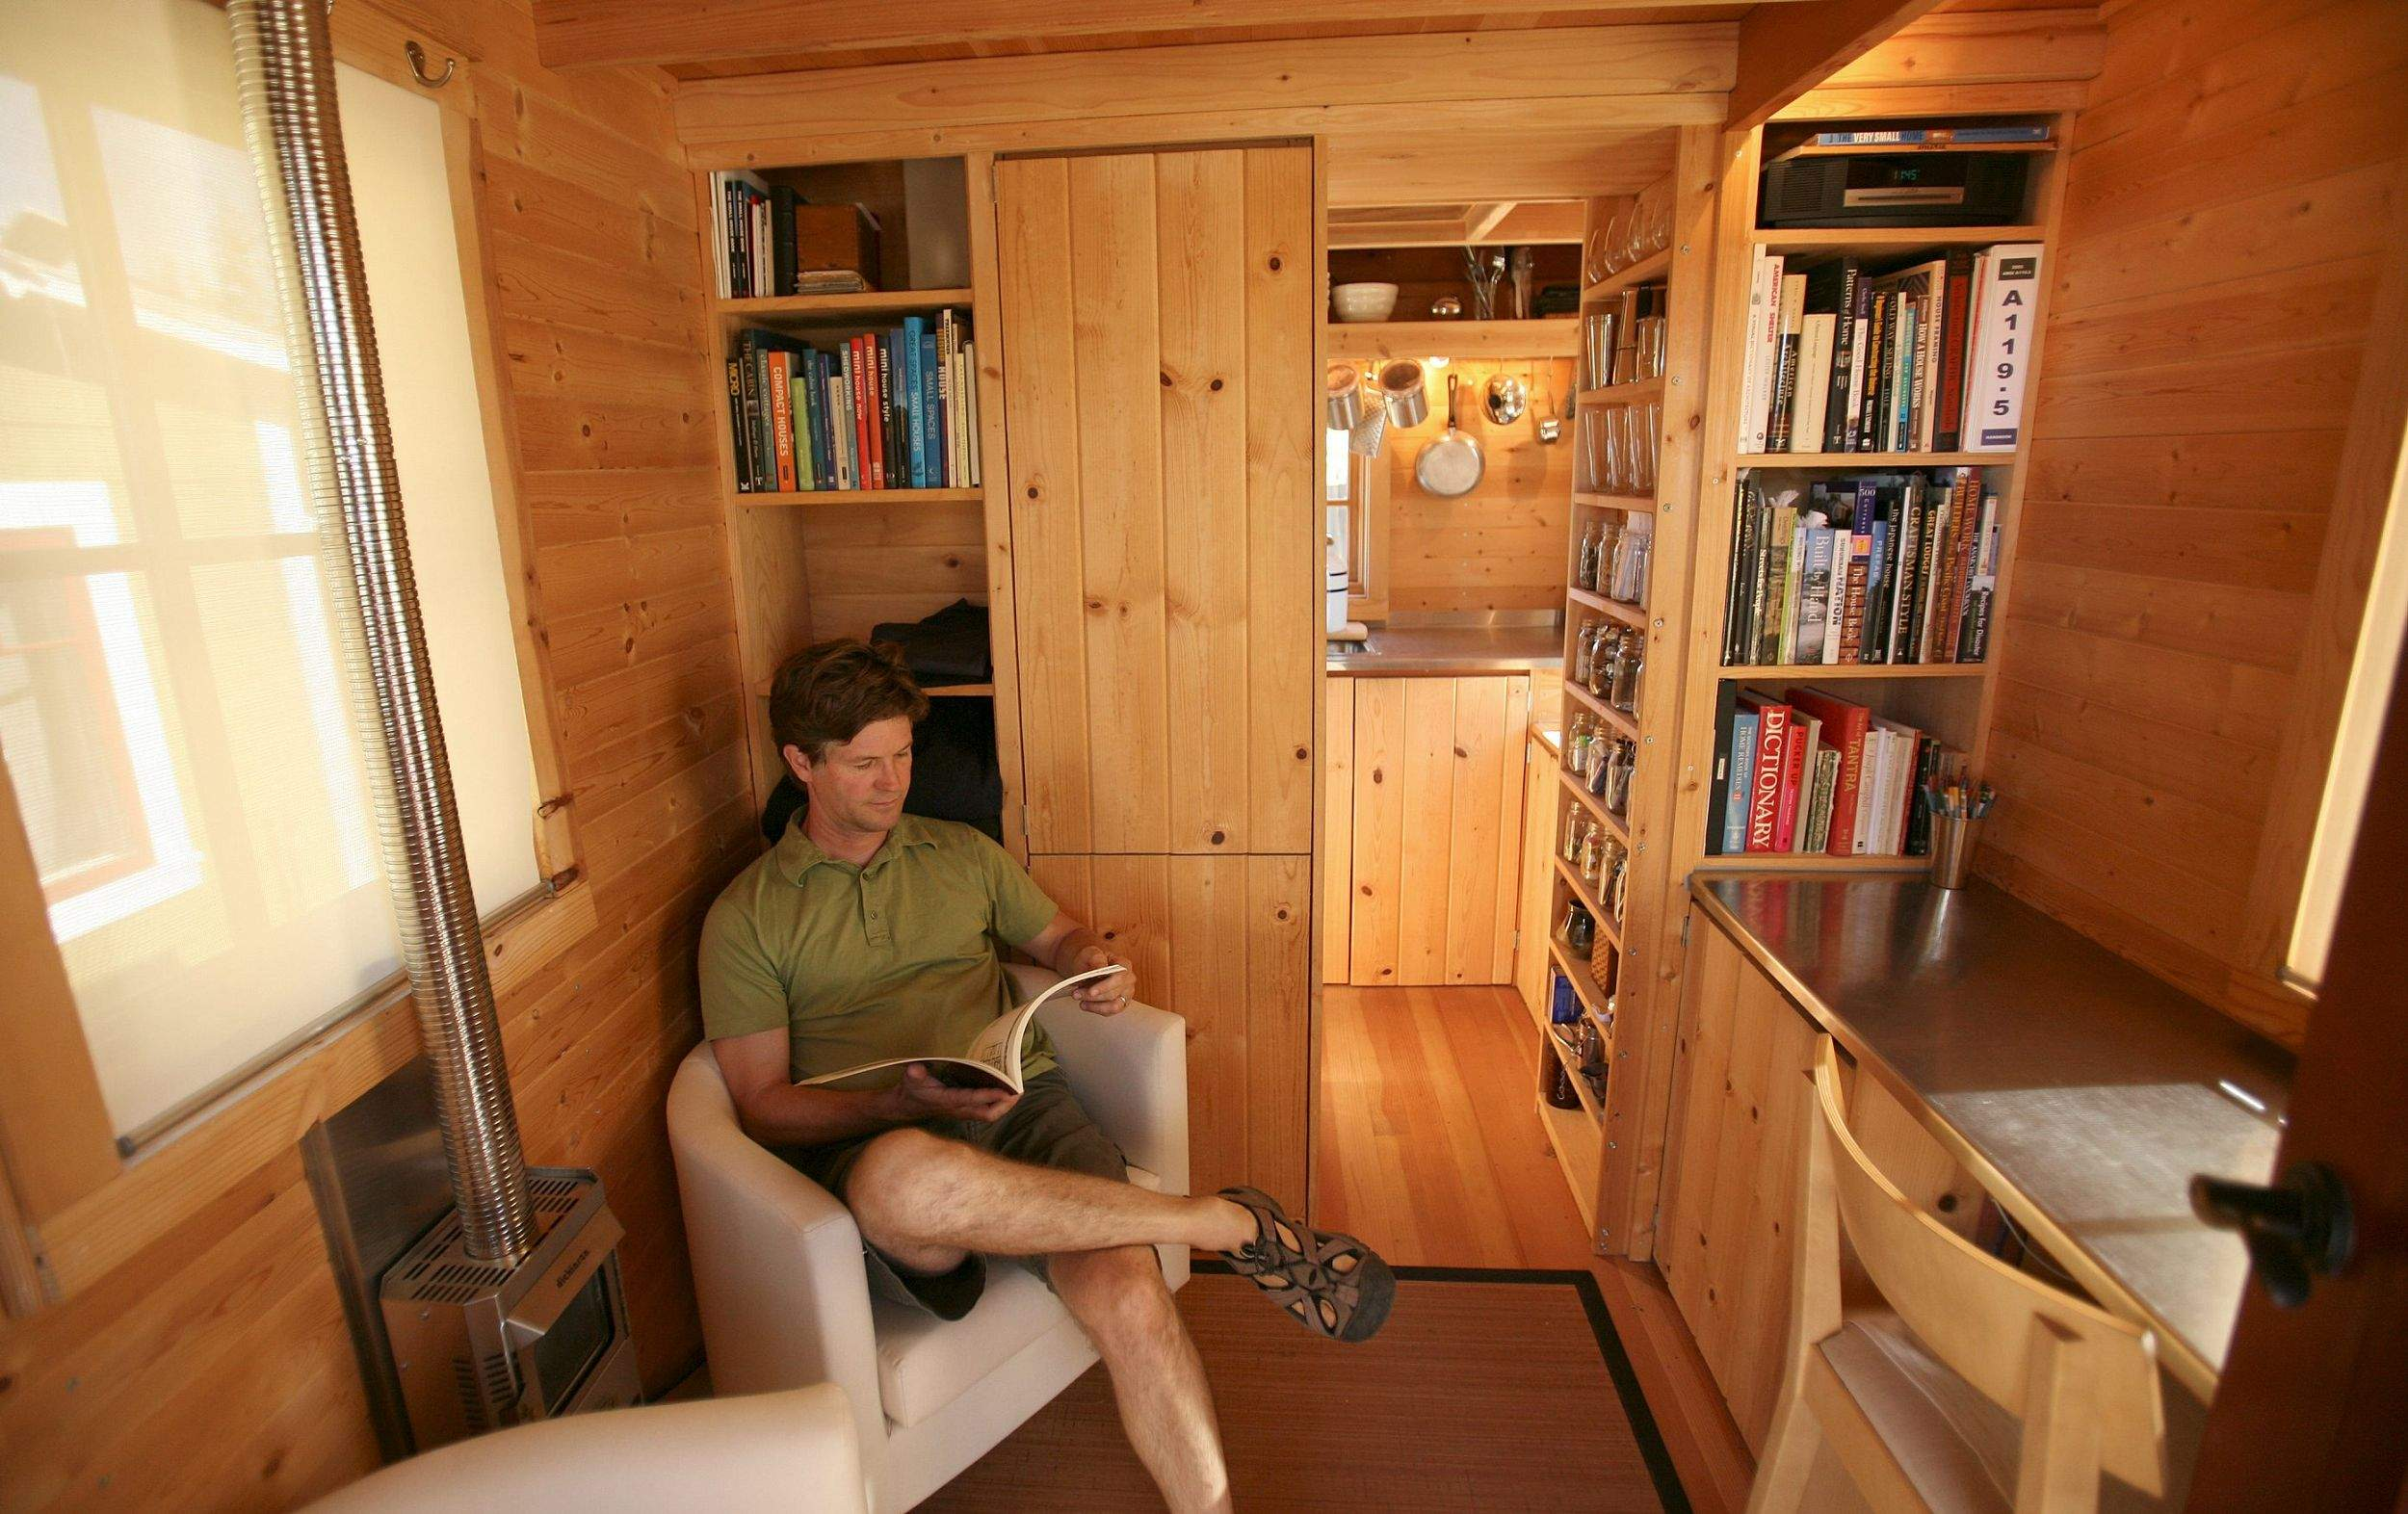 Living Small Tiny House Movement Thrives,Rent A Home Away From Home